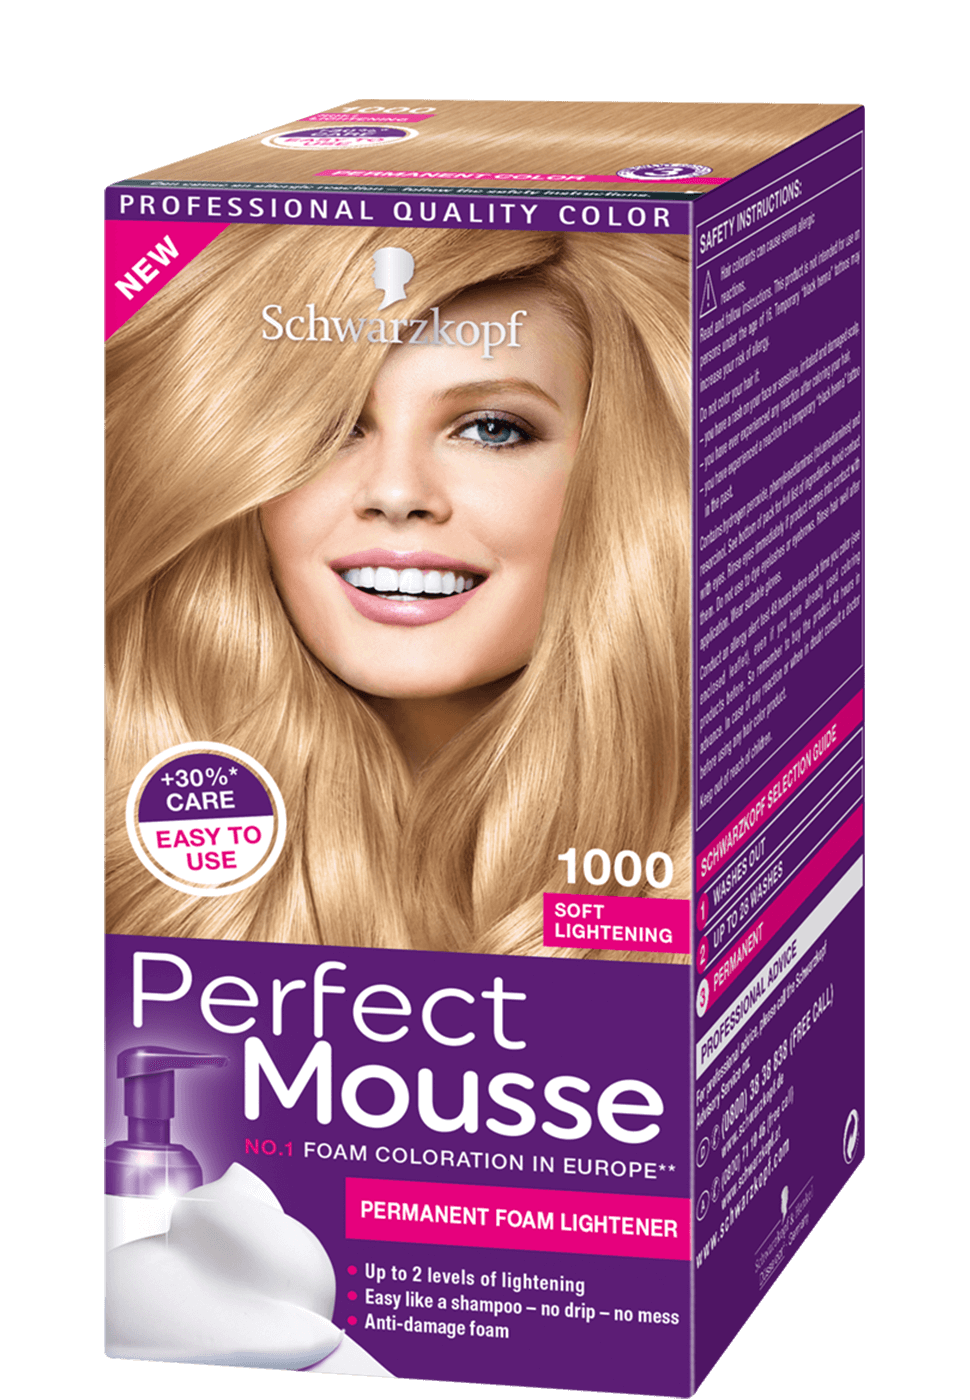 perfect_mousse_com_1000_soft_lightening_970x1400